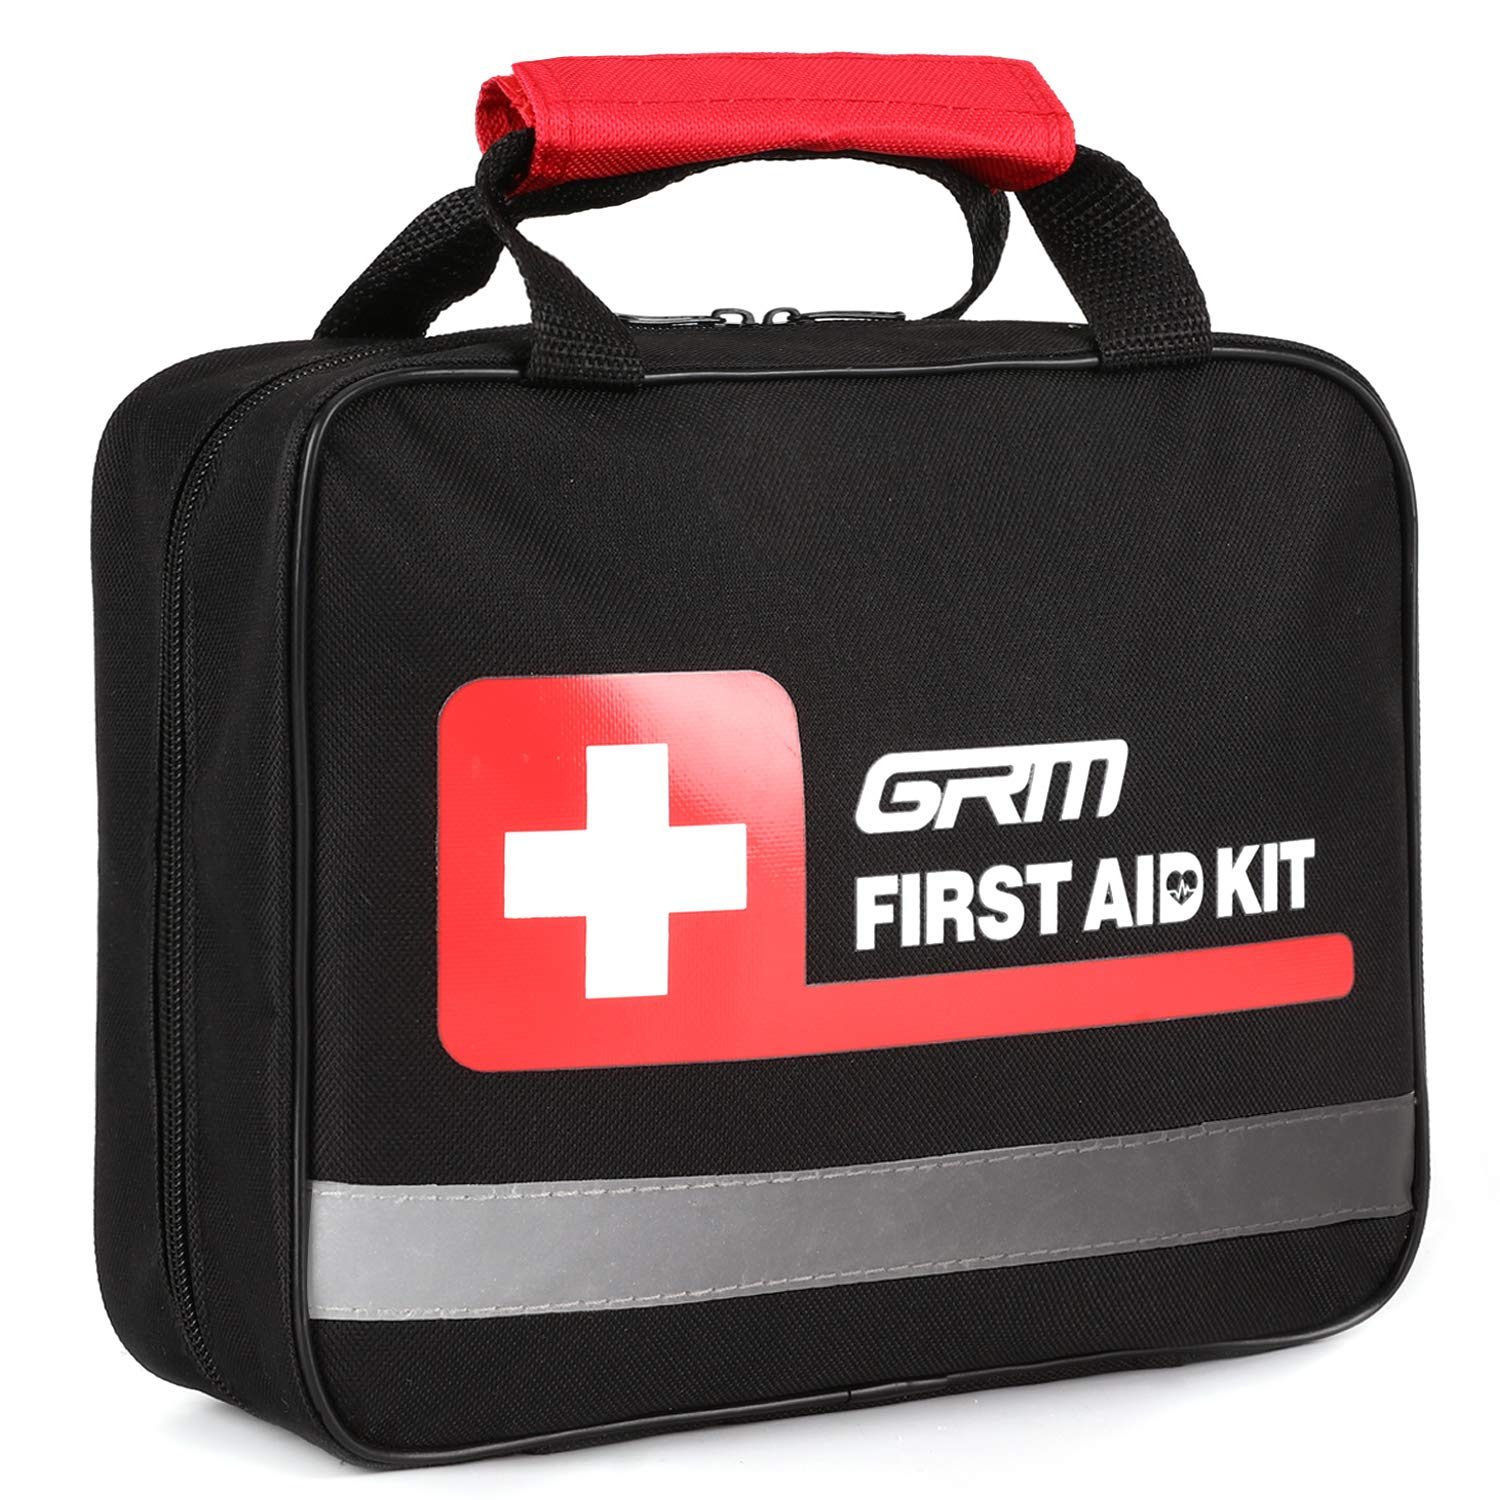 Car First Aid Kit >> Grm Upgraded 465 Pieces First Aid Kit For Emergency At Home Office Outdoors Car Camping Workplace Hiking And Survival